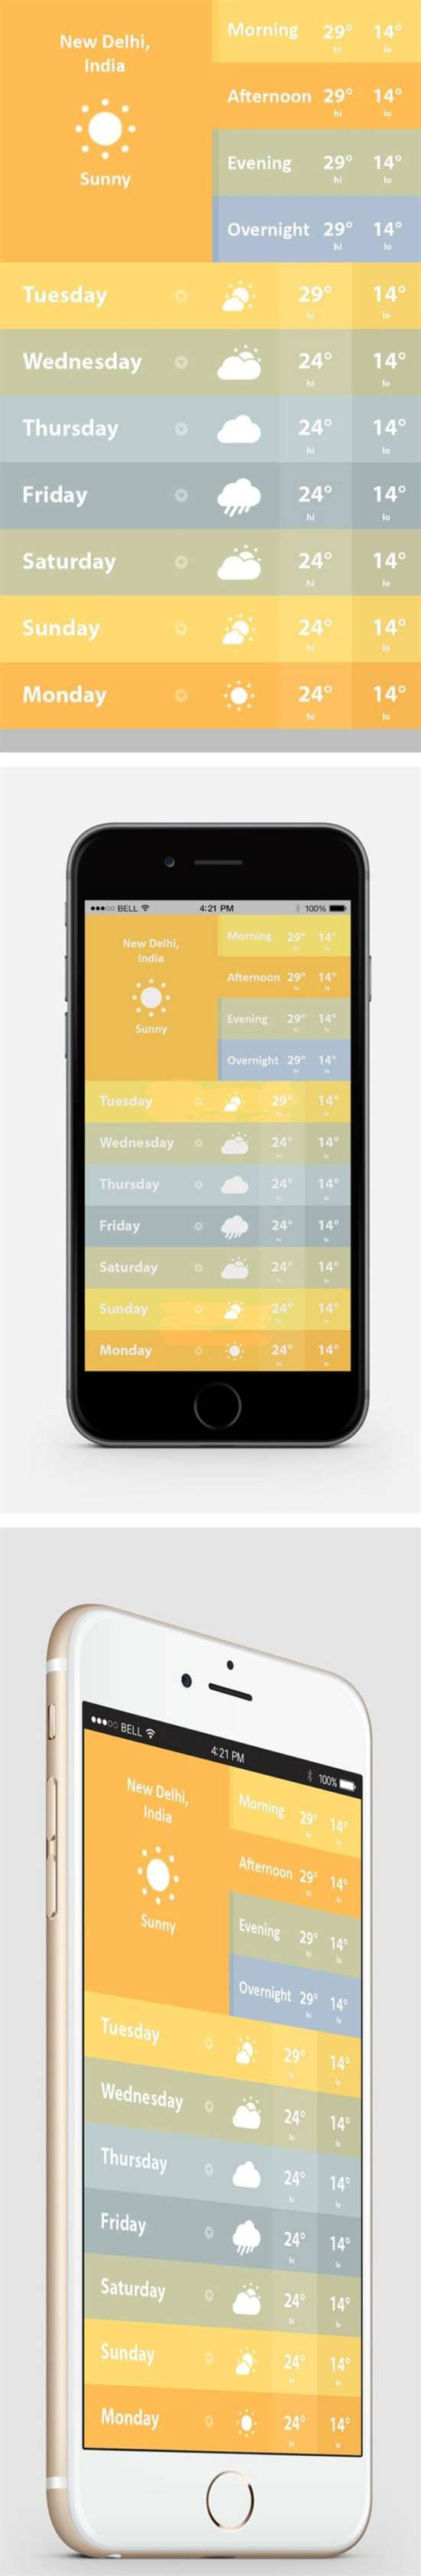 weather_app_design_by_srishti_arora_screenshot